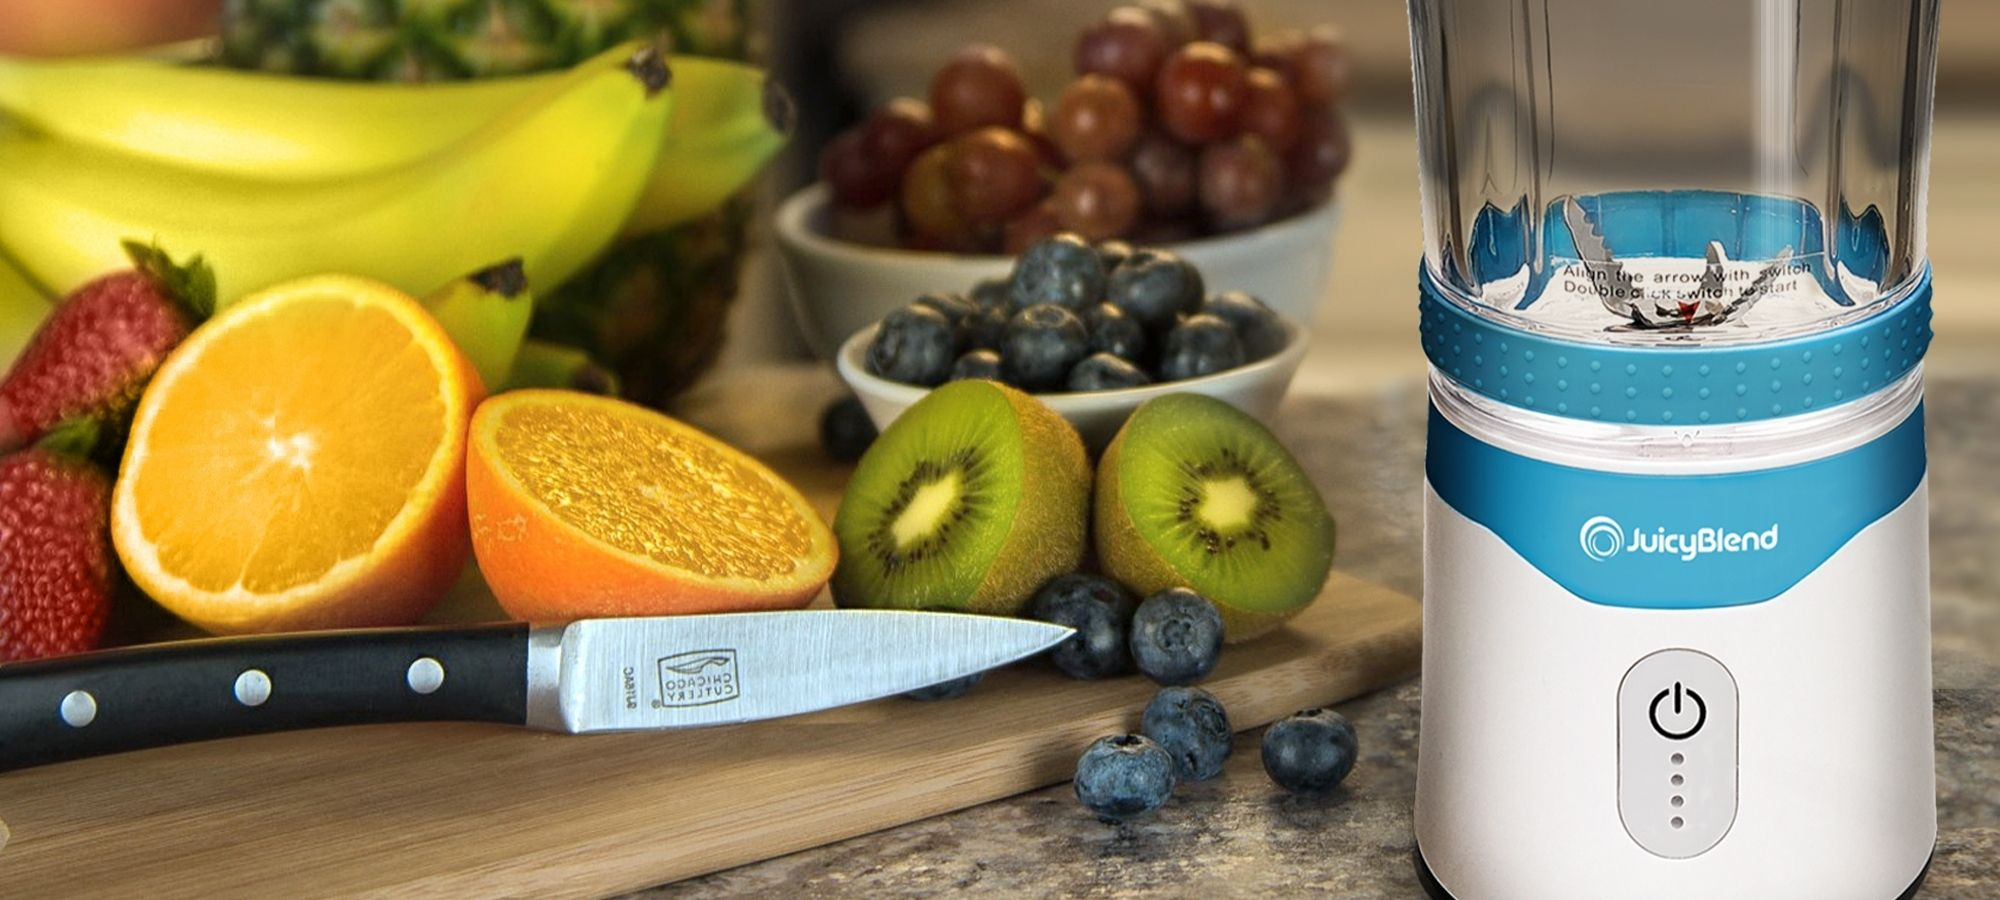 Lifestyle image for light blue JuicyBlend portable blender with cutting board, fruit and knife as background.